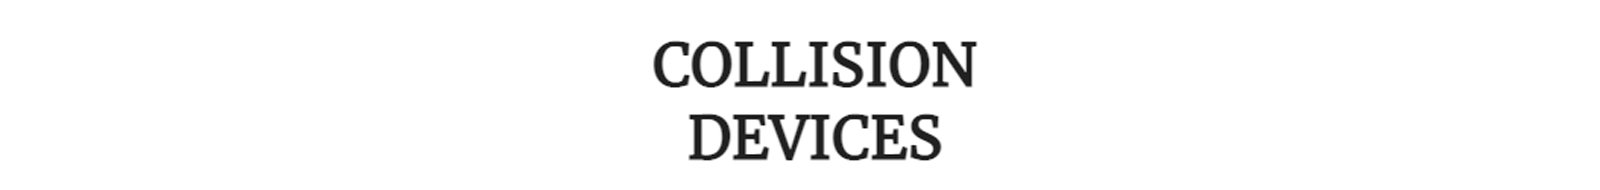 Collision Devices Effects